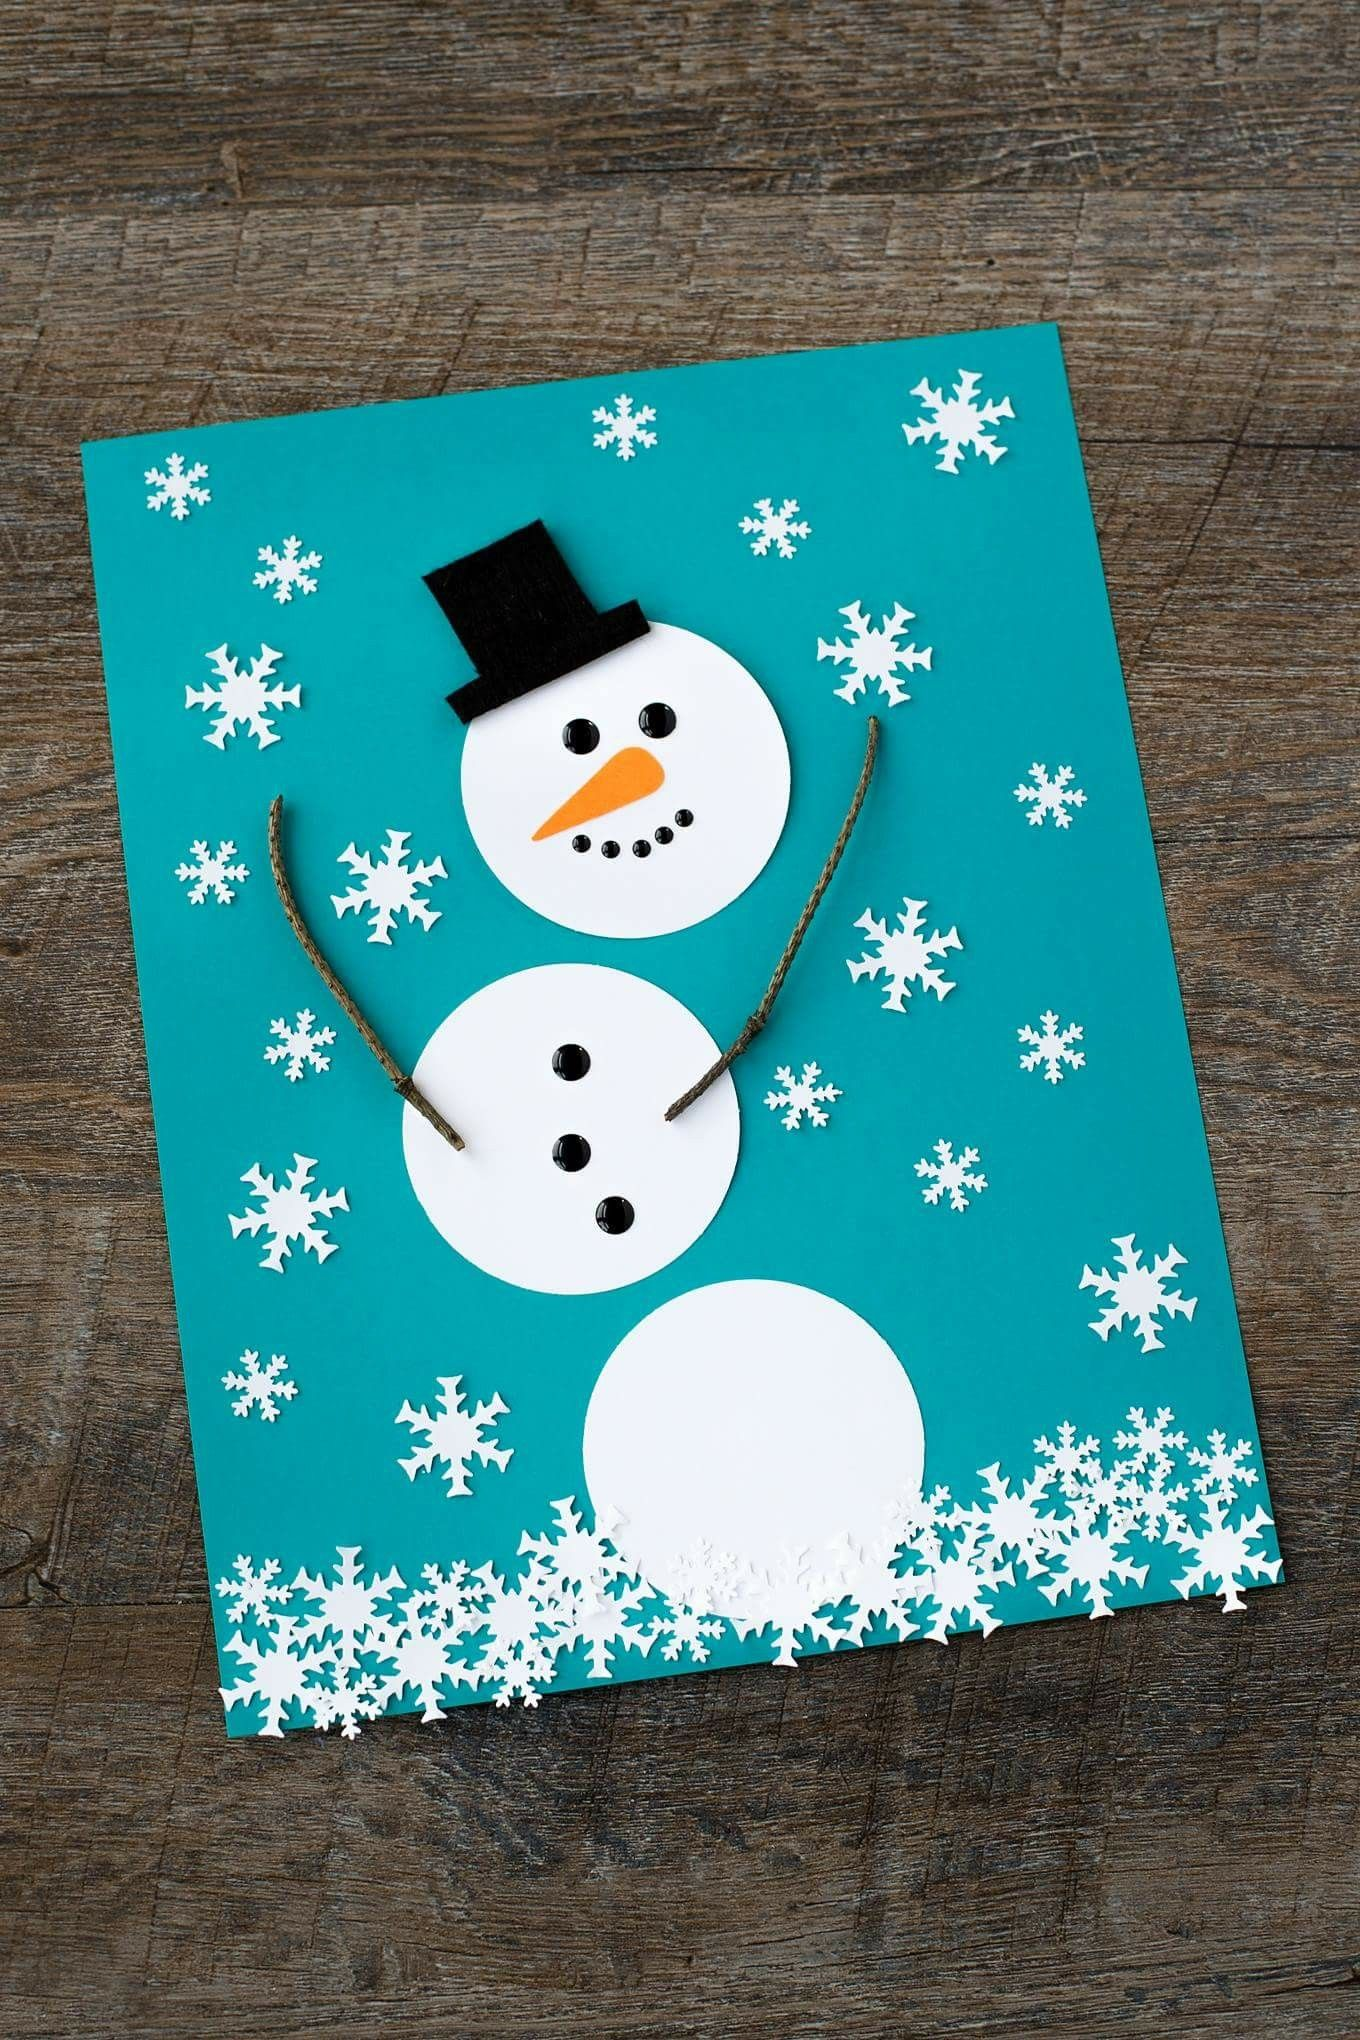 Paper Snowman Art Easy Craft For Kids